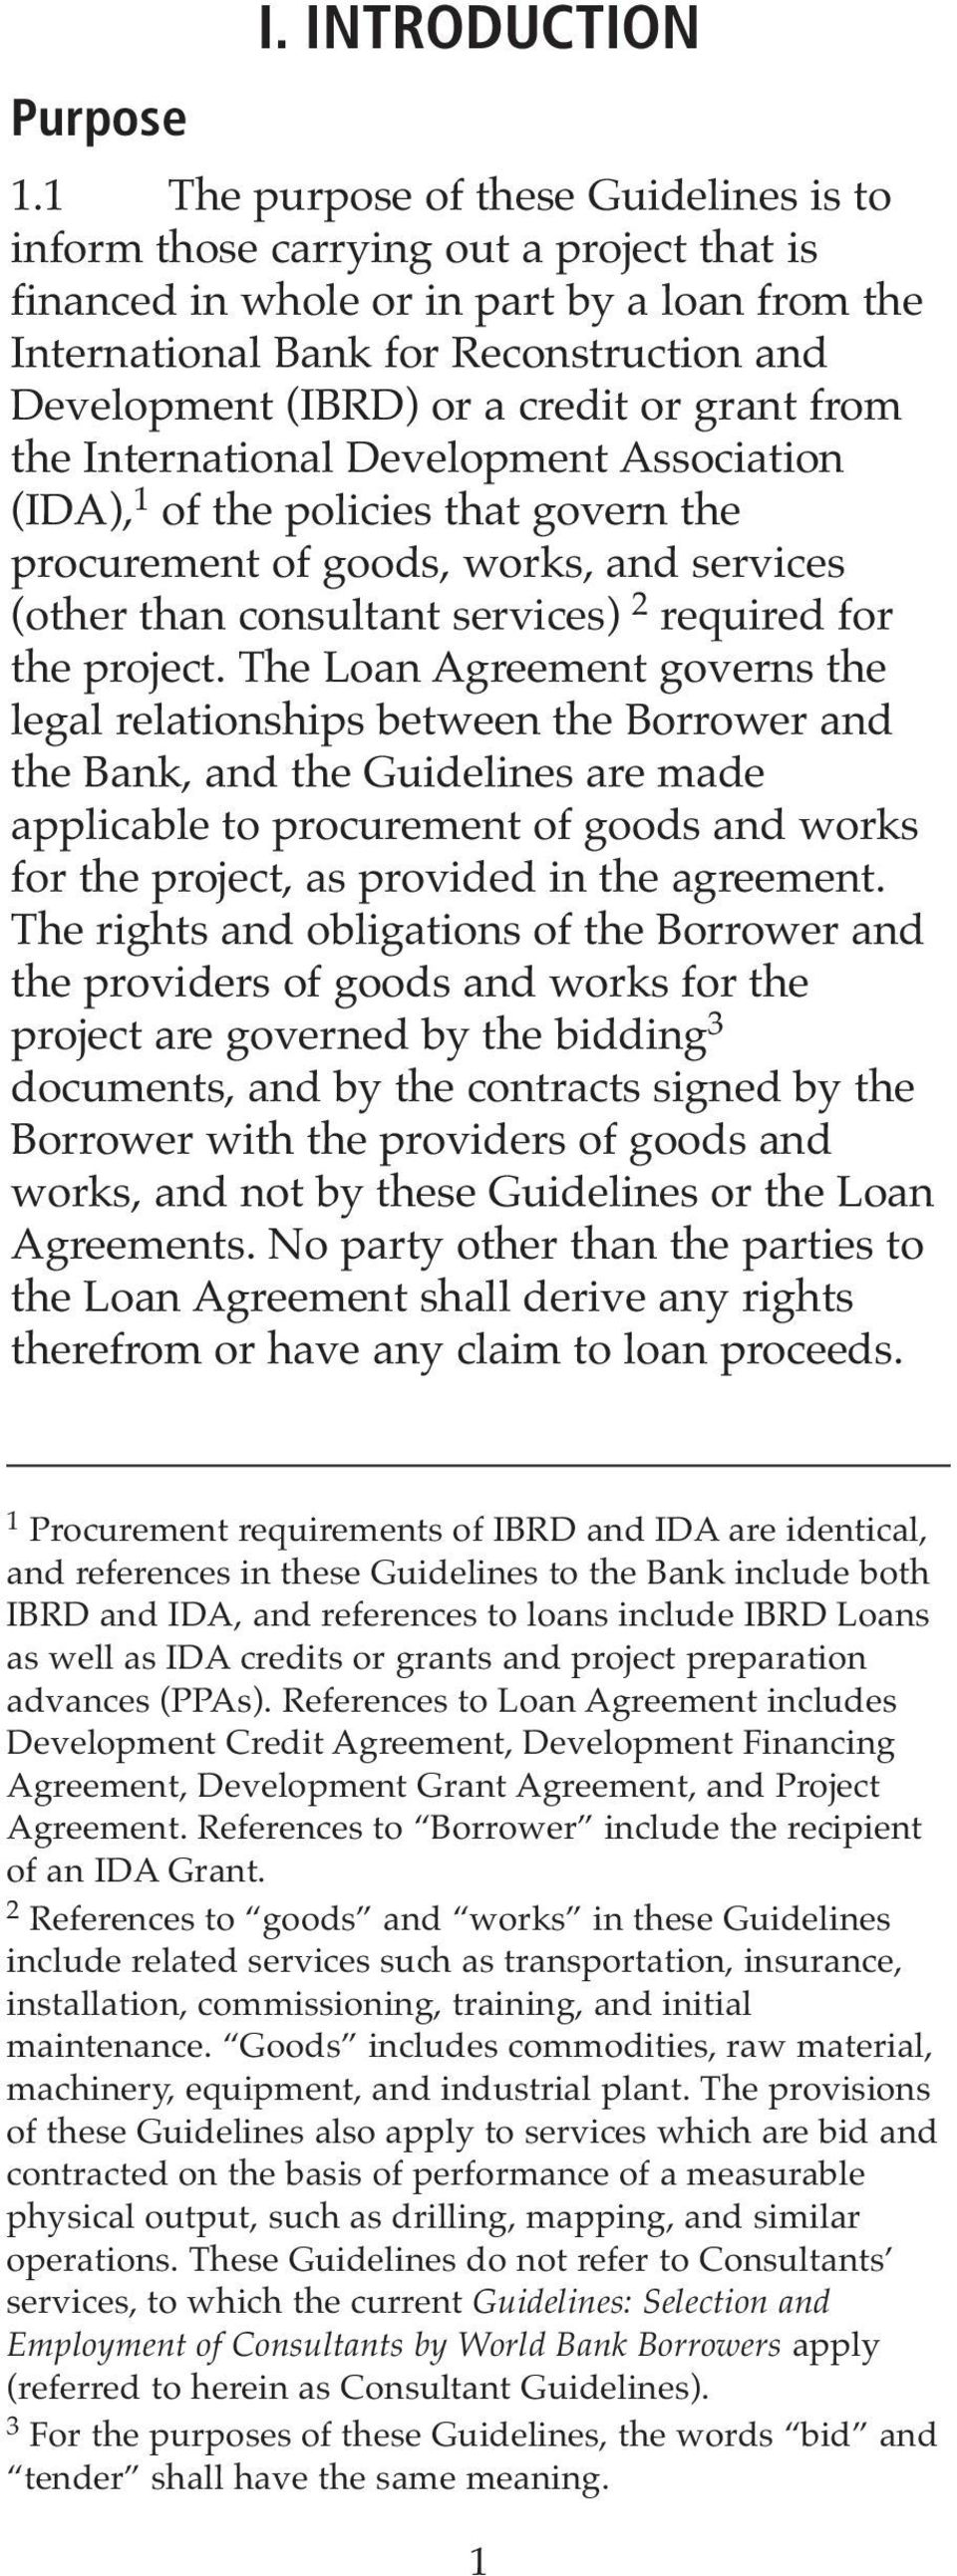 credit or grant from the International Development Association (IDA), 1 of the policies that govern the procurement of goods, works, and services (other than consultant services) 2 required for the